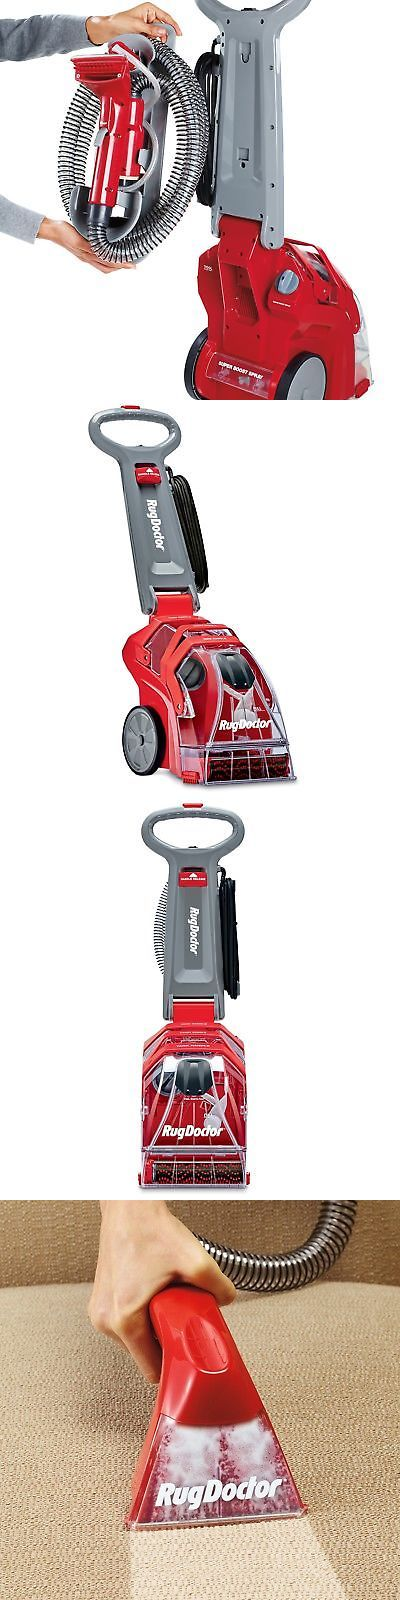 Carpet Shampooers 177746: Rug Doctor Deep Carpet Cleaner, Electric Portable Vacuum W Upholstery Tools New -> BUY IT NOW ONLY: $267.09 on eBay!